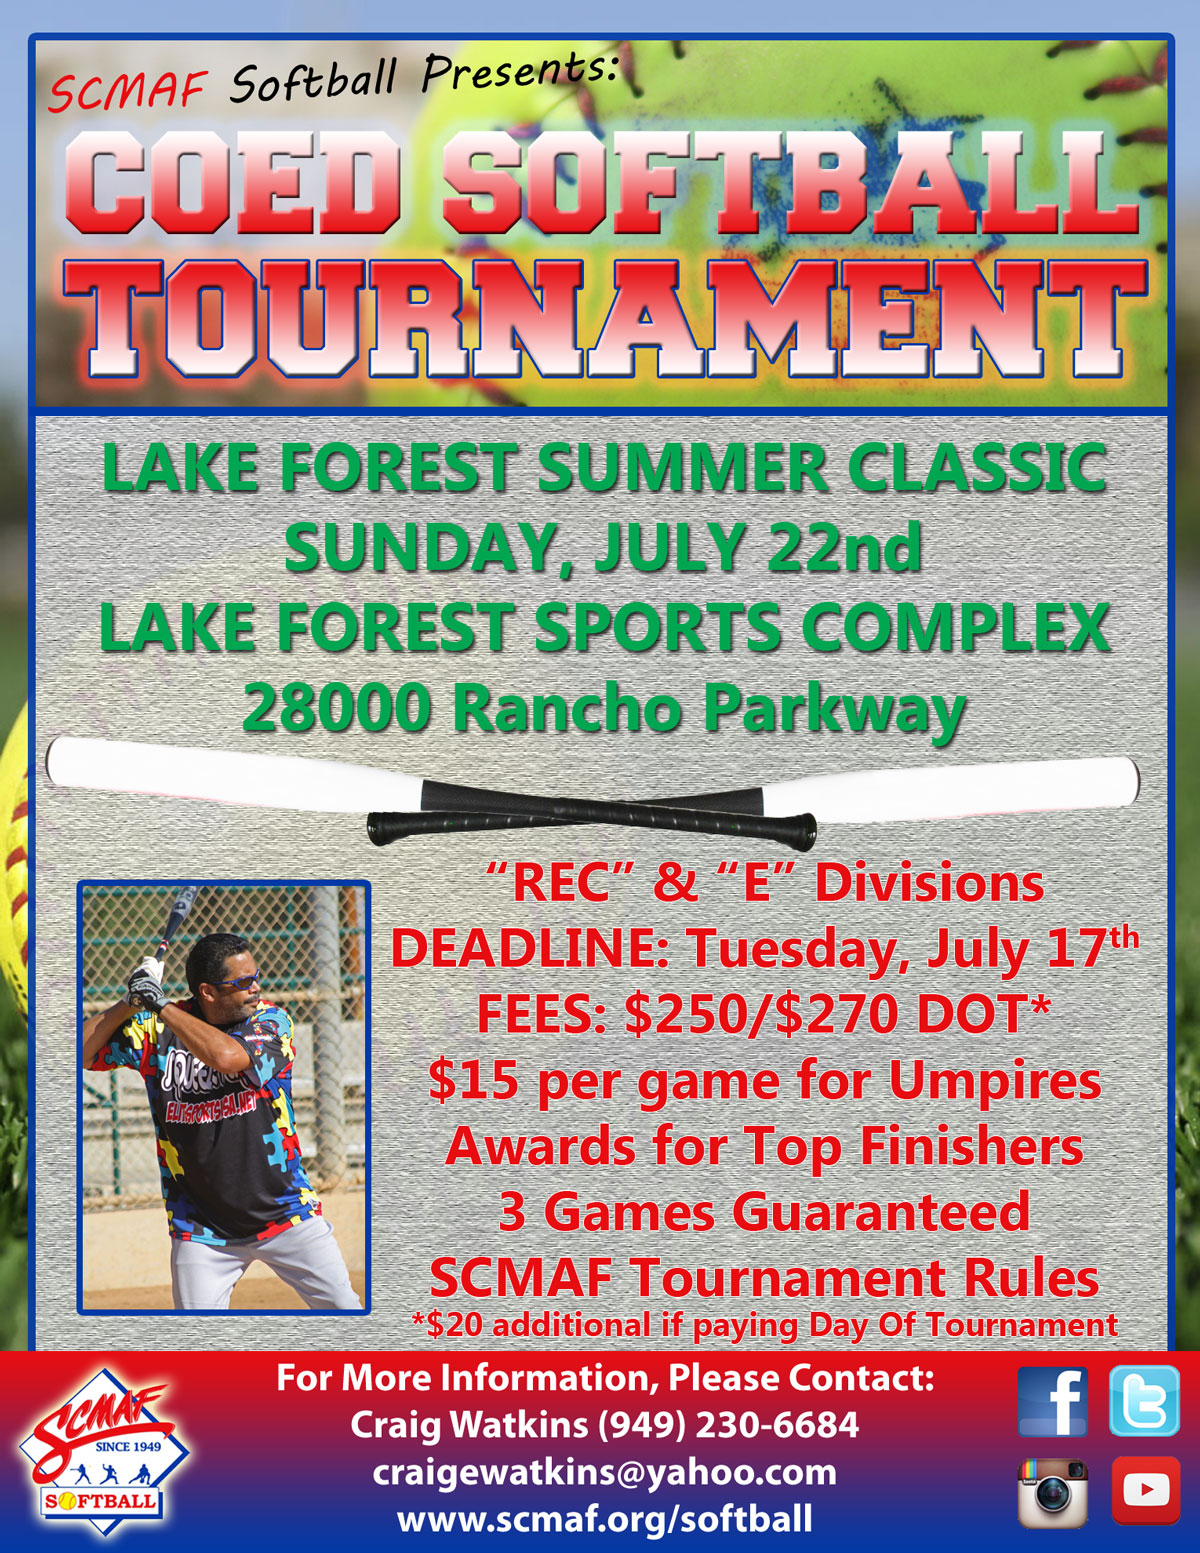 COED Softball: Lake Forest Summer Classic